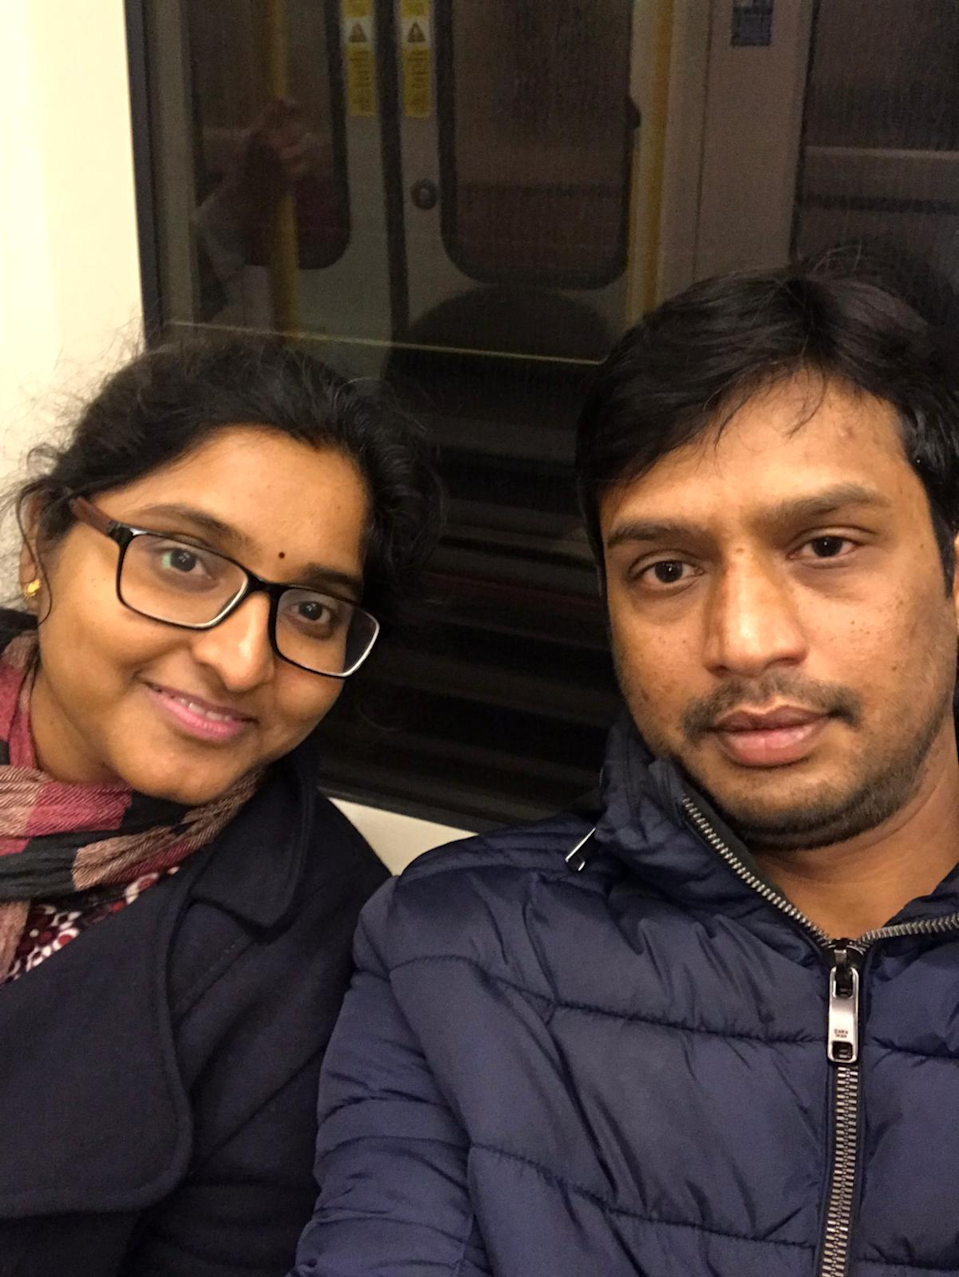 <p>Amarnath Pendyala (right) was refused indefinite leave to remain four and a half years ago under unlawful policy and his case remains unresolved</p> (Amar)